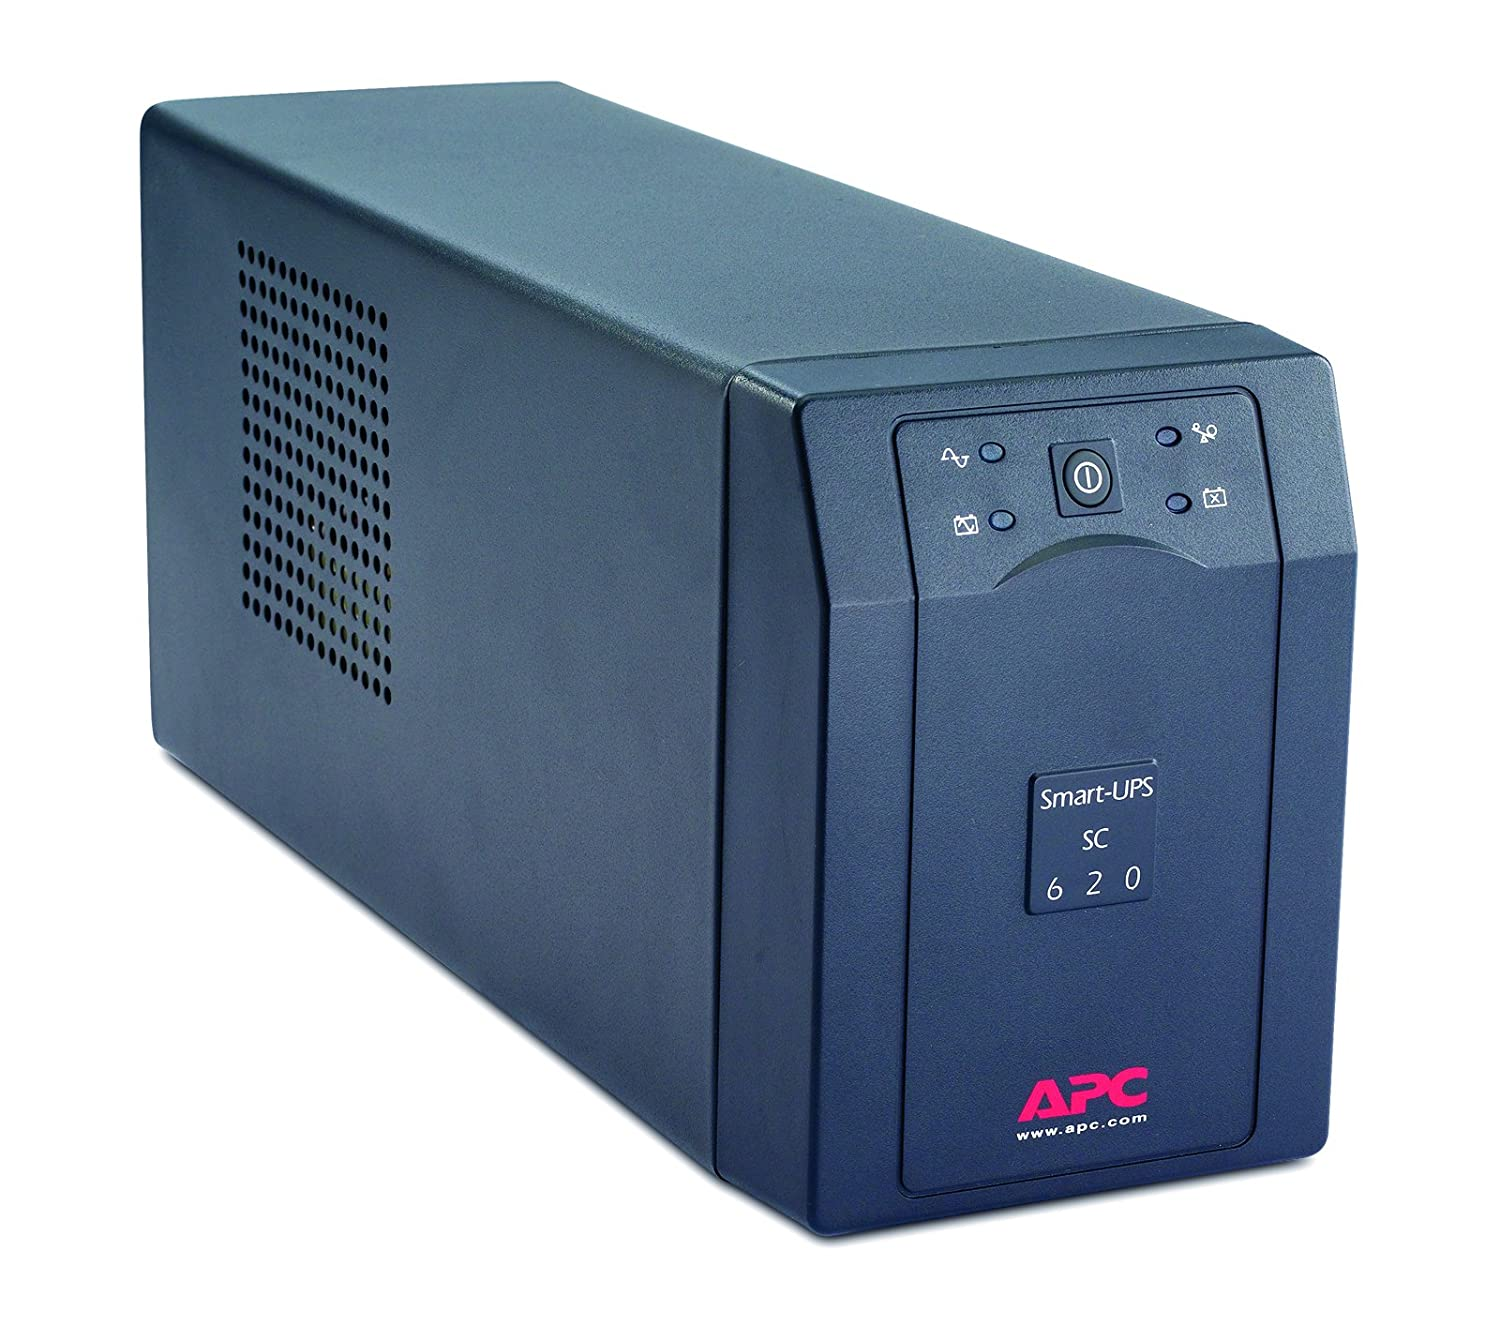 APC Smart-UPS SC - SC620I - Uninterruptible Power Supply 620VA (Line  Interactive, 4 Outlets IEC-C13, Shutdown Software)